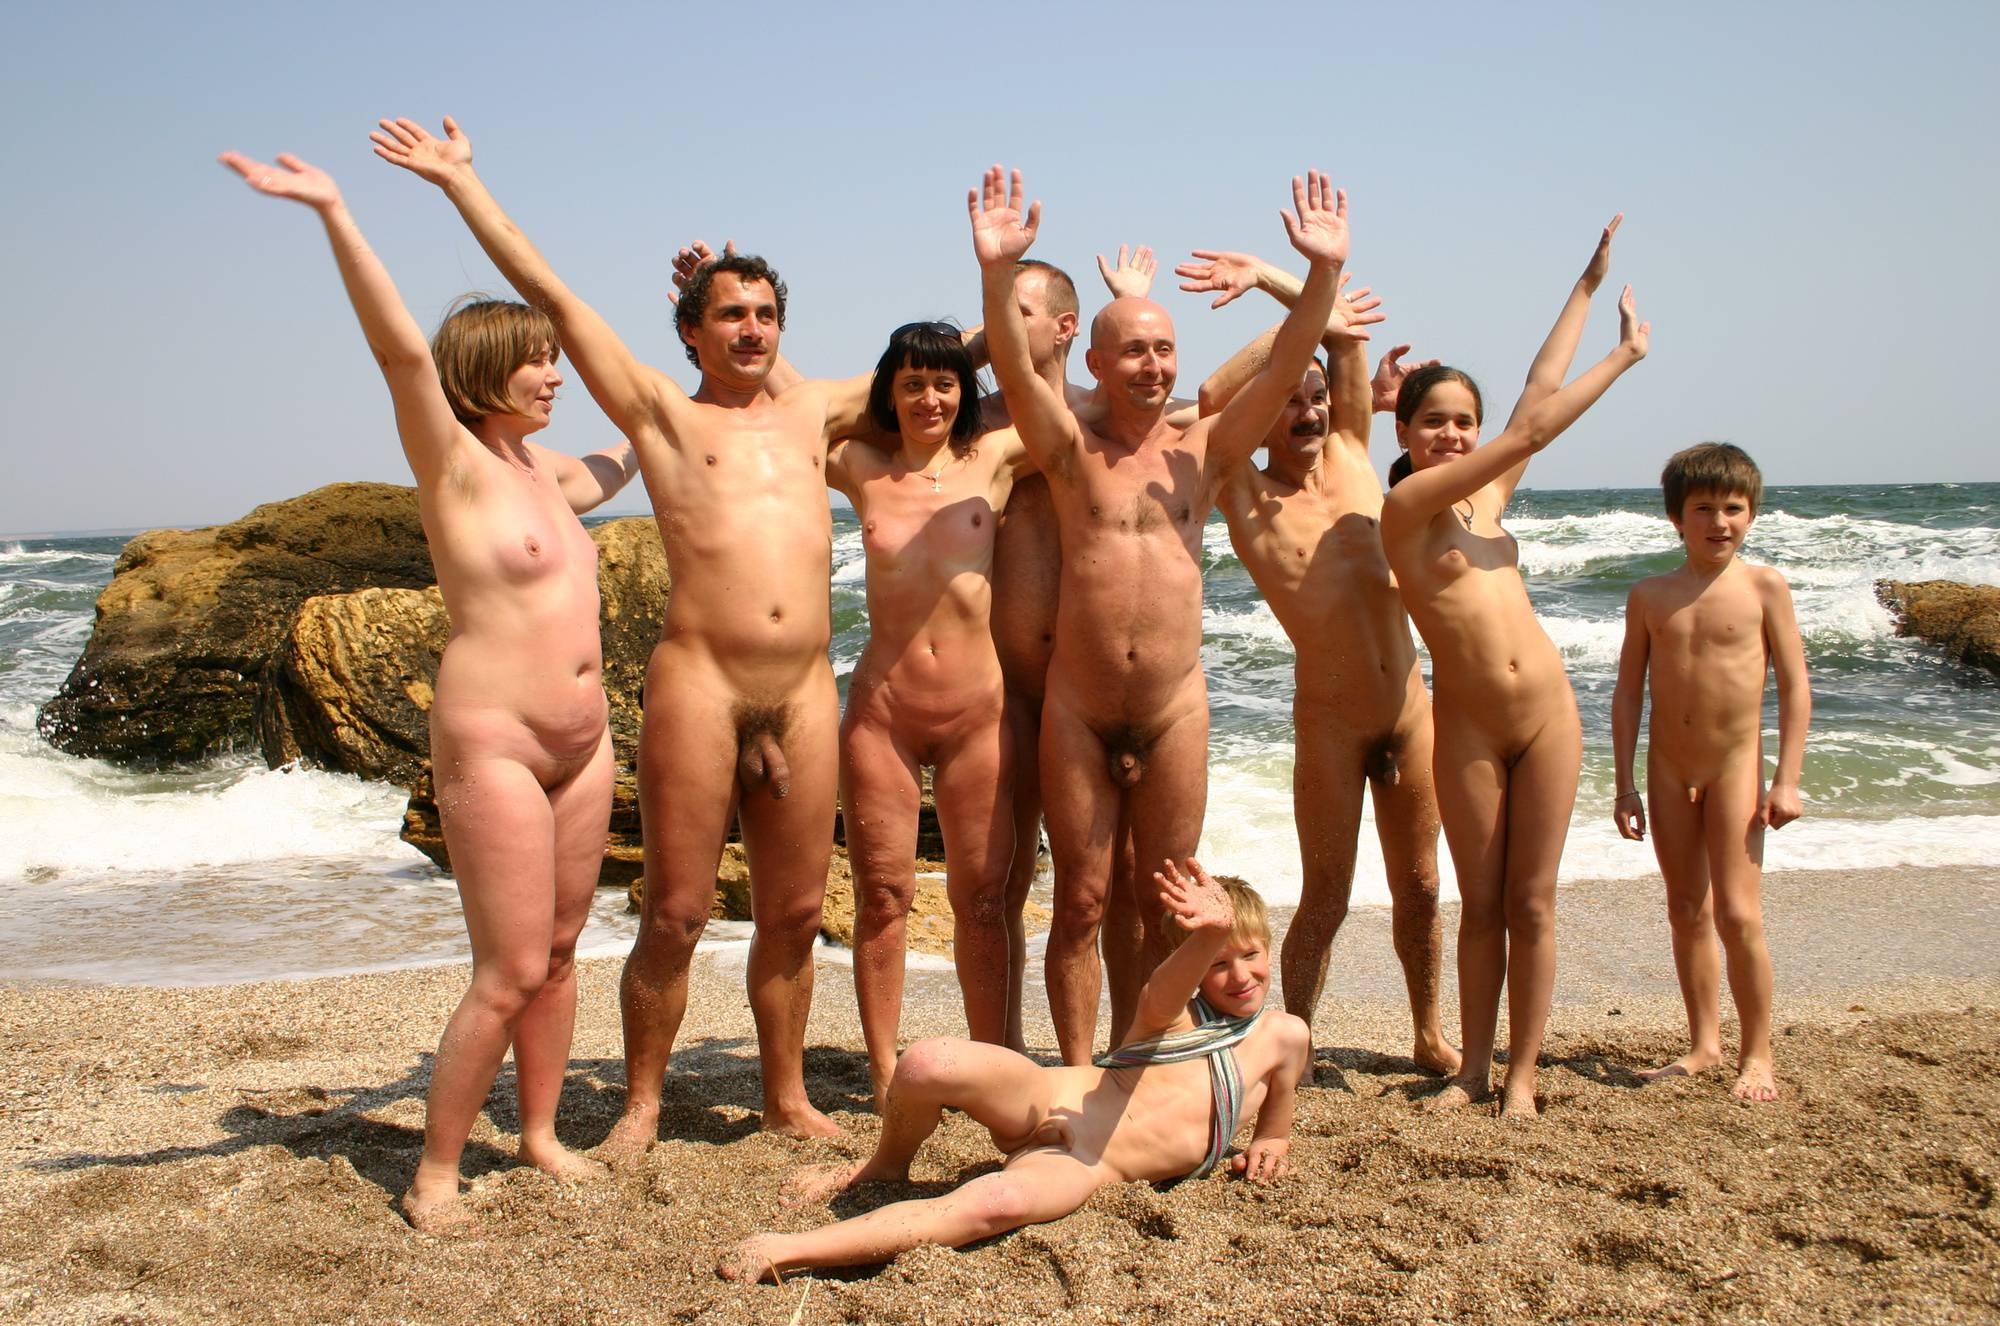 Nudist Gallery Group Wave to Remember - 1